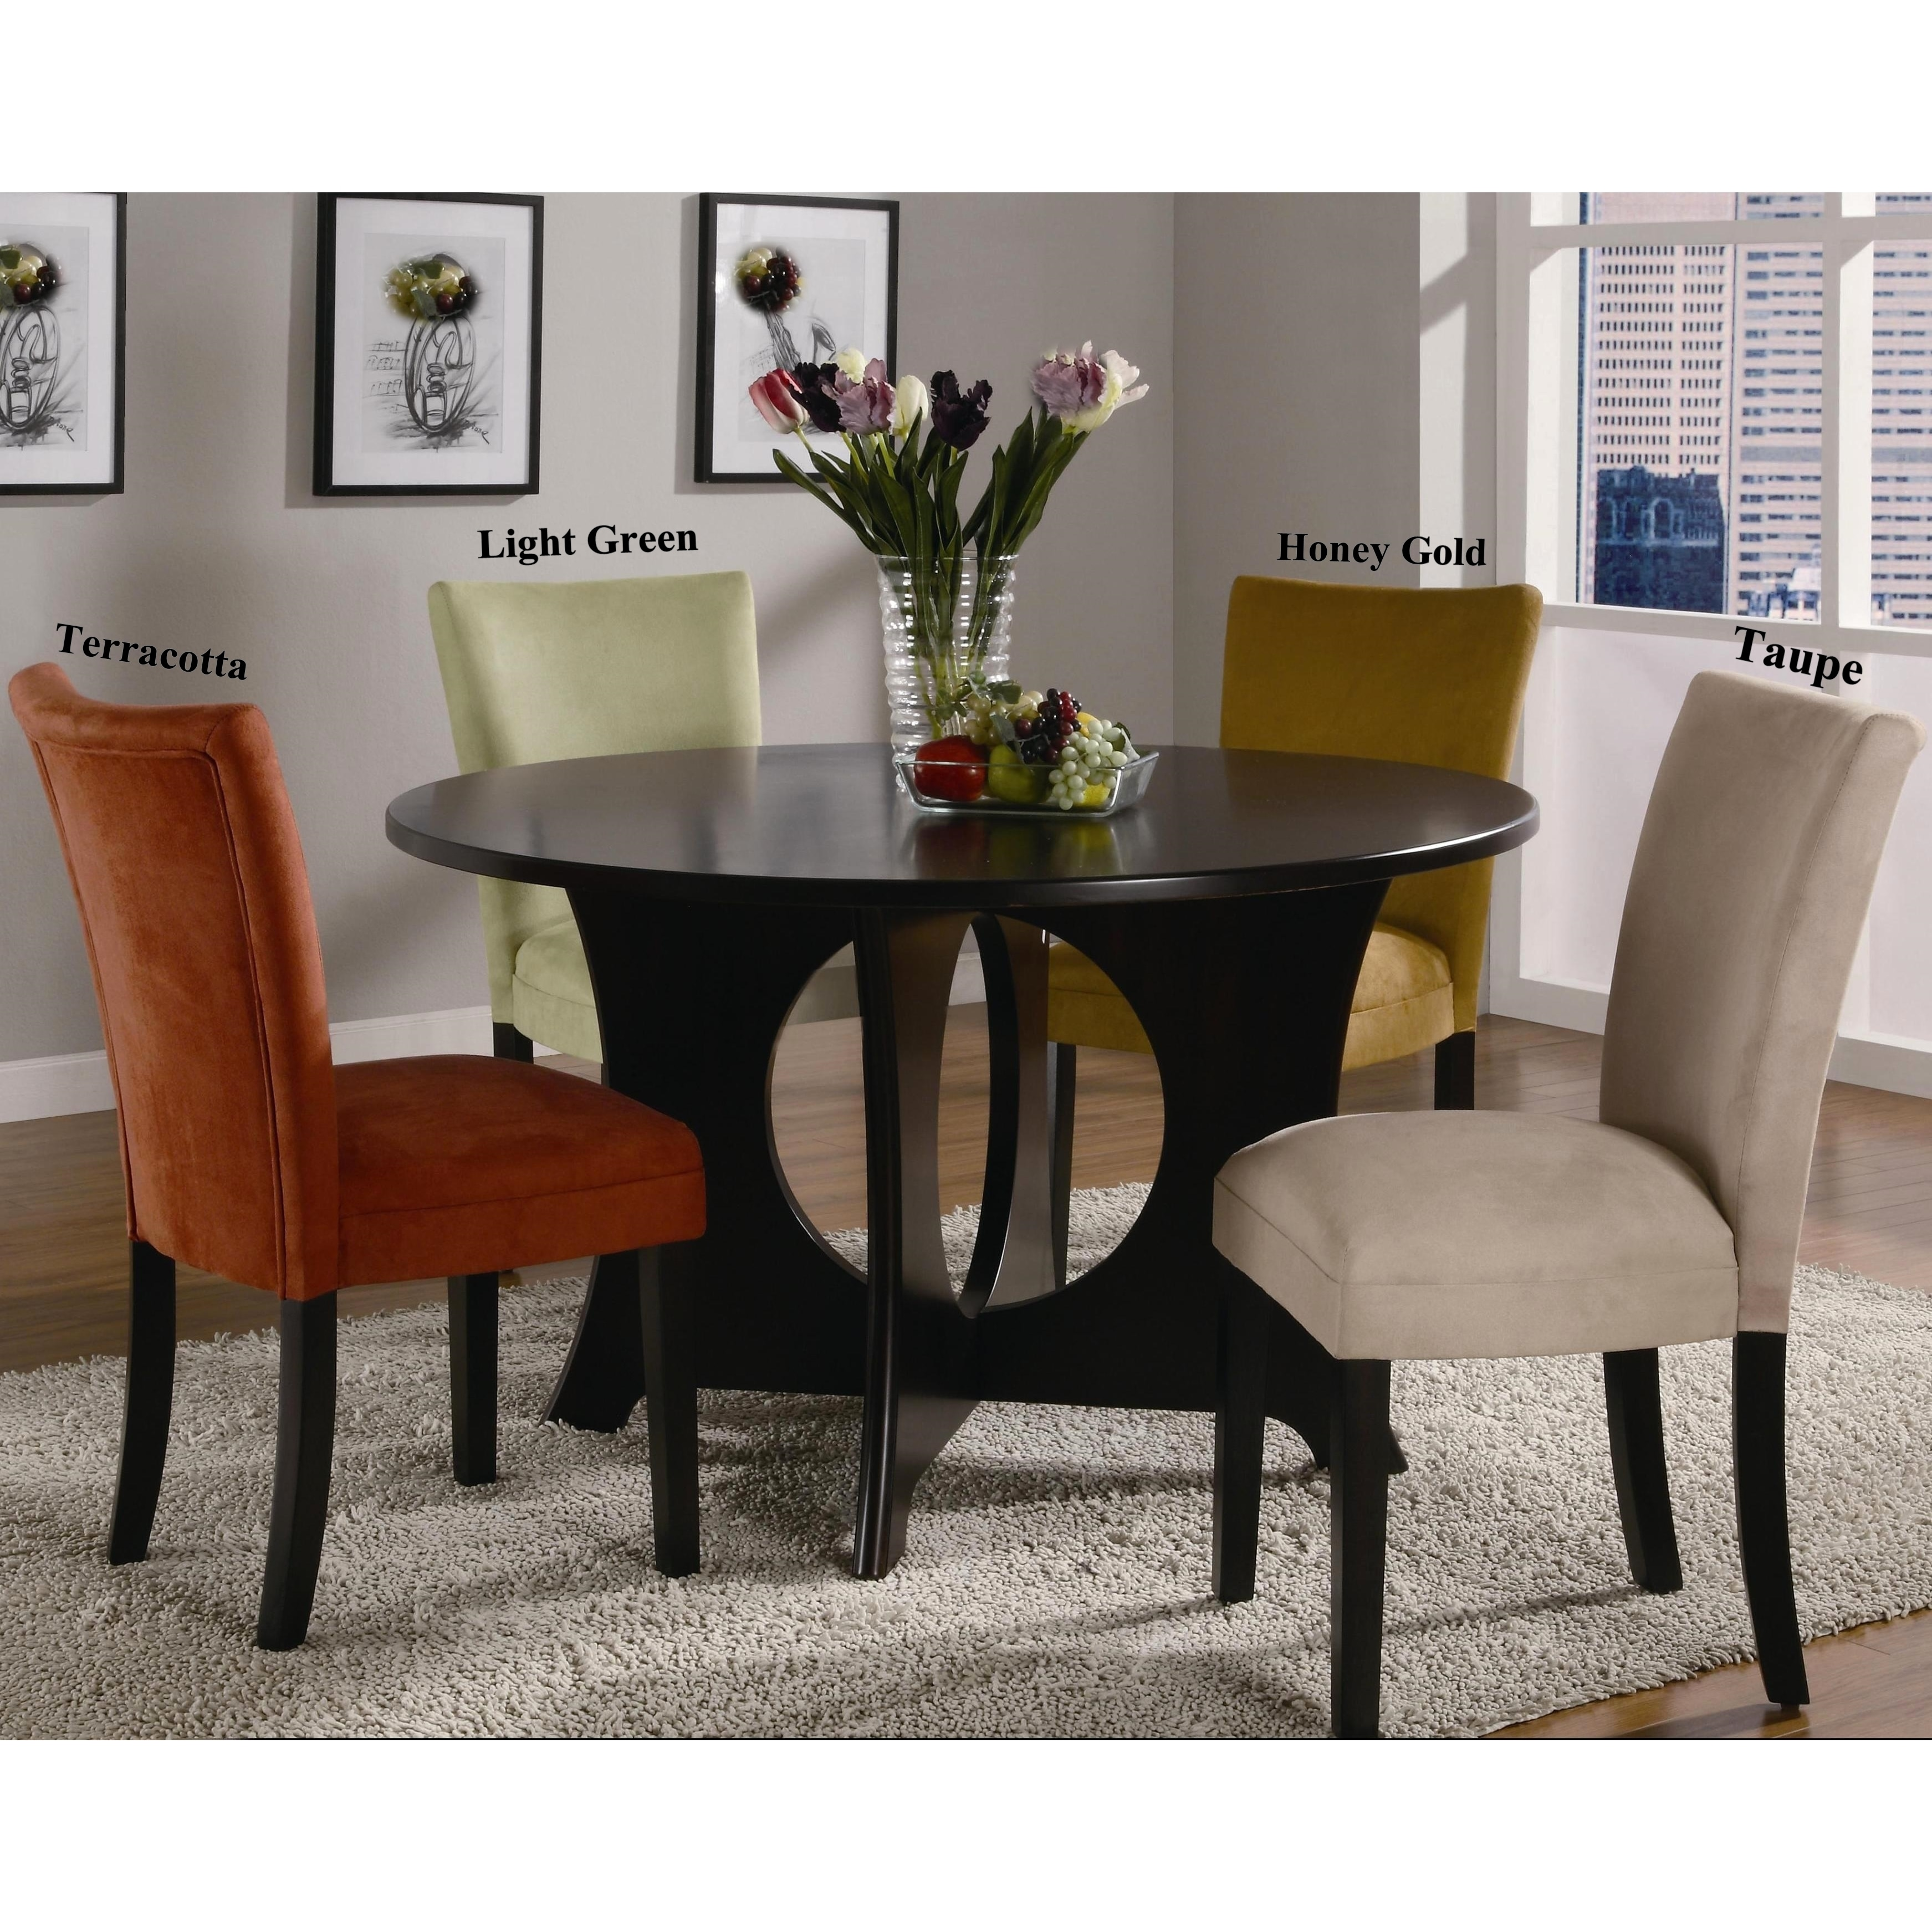 Mirage Round Table / Microfiber Parson Chairs 5 Piece Dining Set